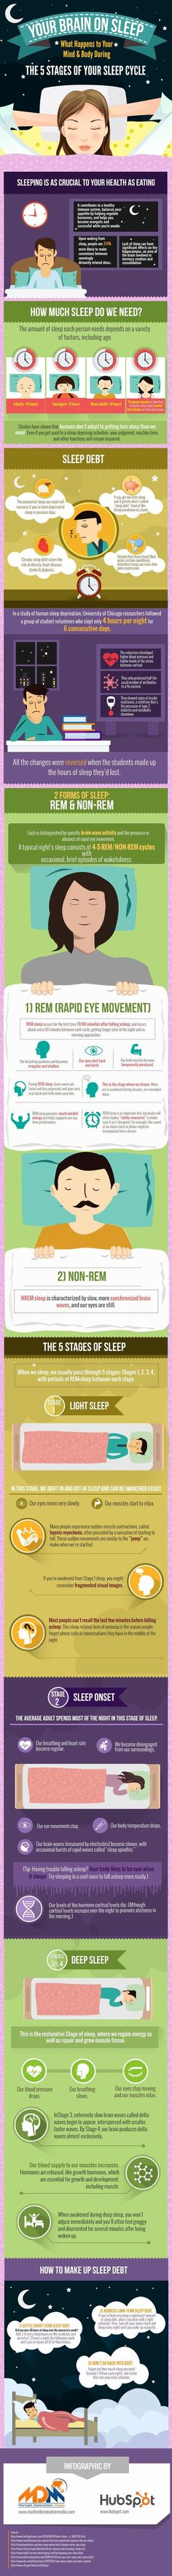 For some people, falling asleep can be more difficult that it sounds. We share a step by step guide on how to fall asleep easily.